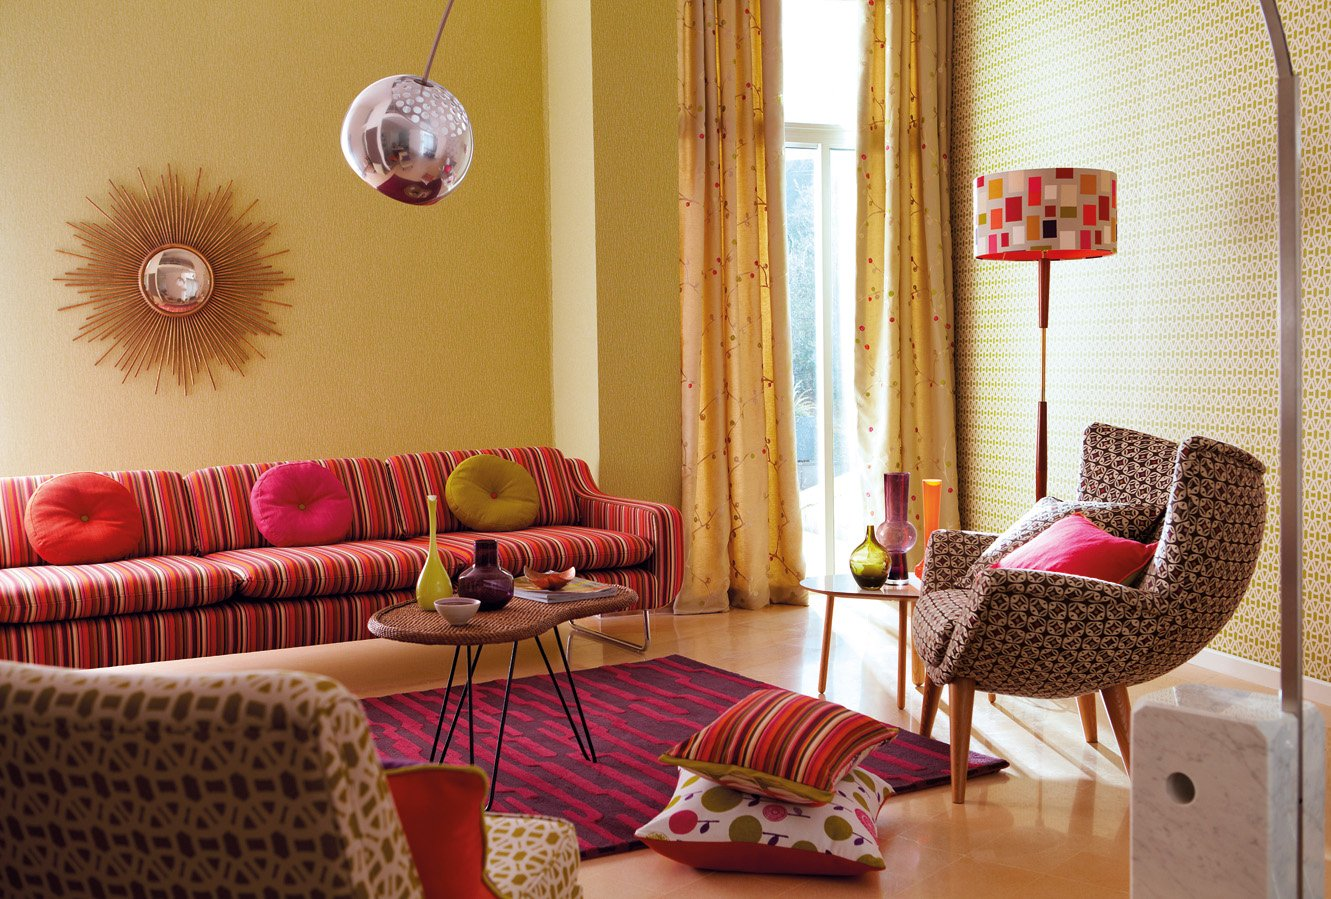 1970s Interior Design Ideas with Photo Examples. Unusual yellow walls for vintage room with spherical silver shade for lamp